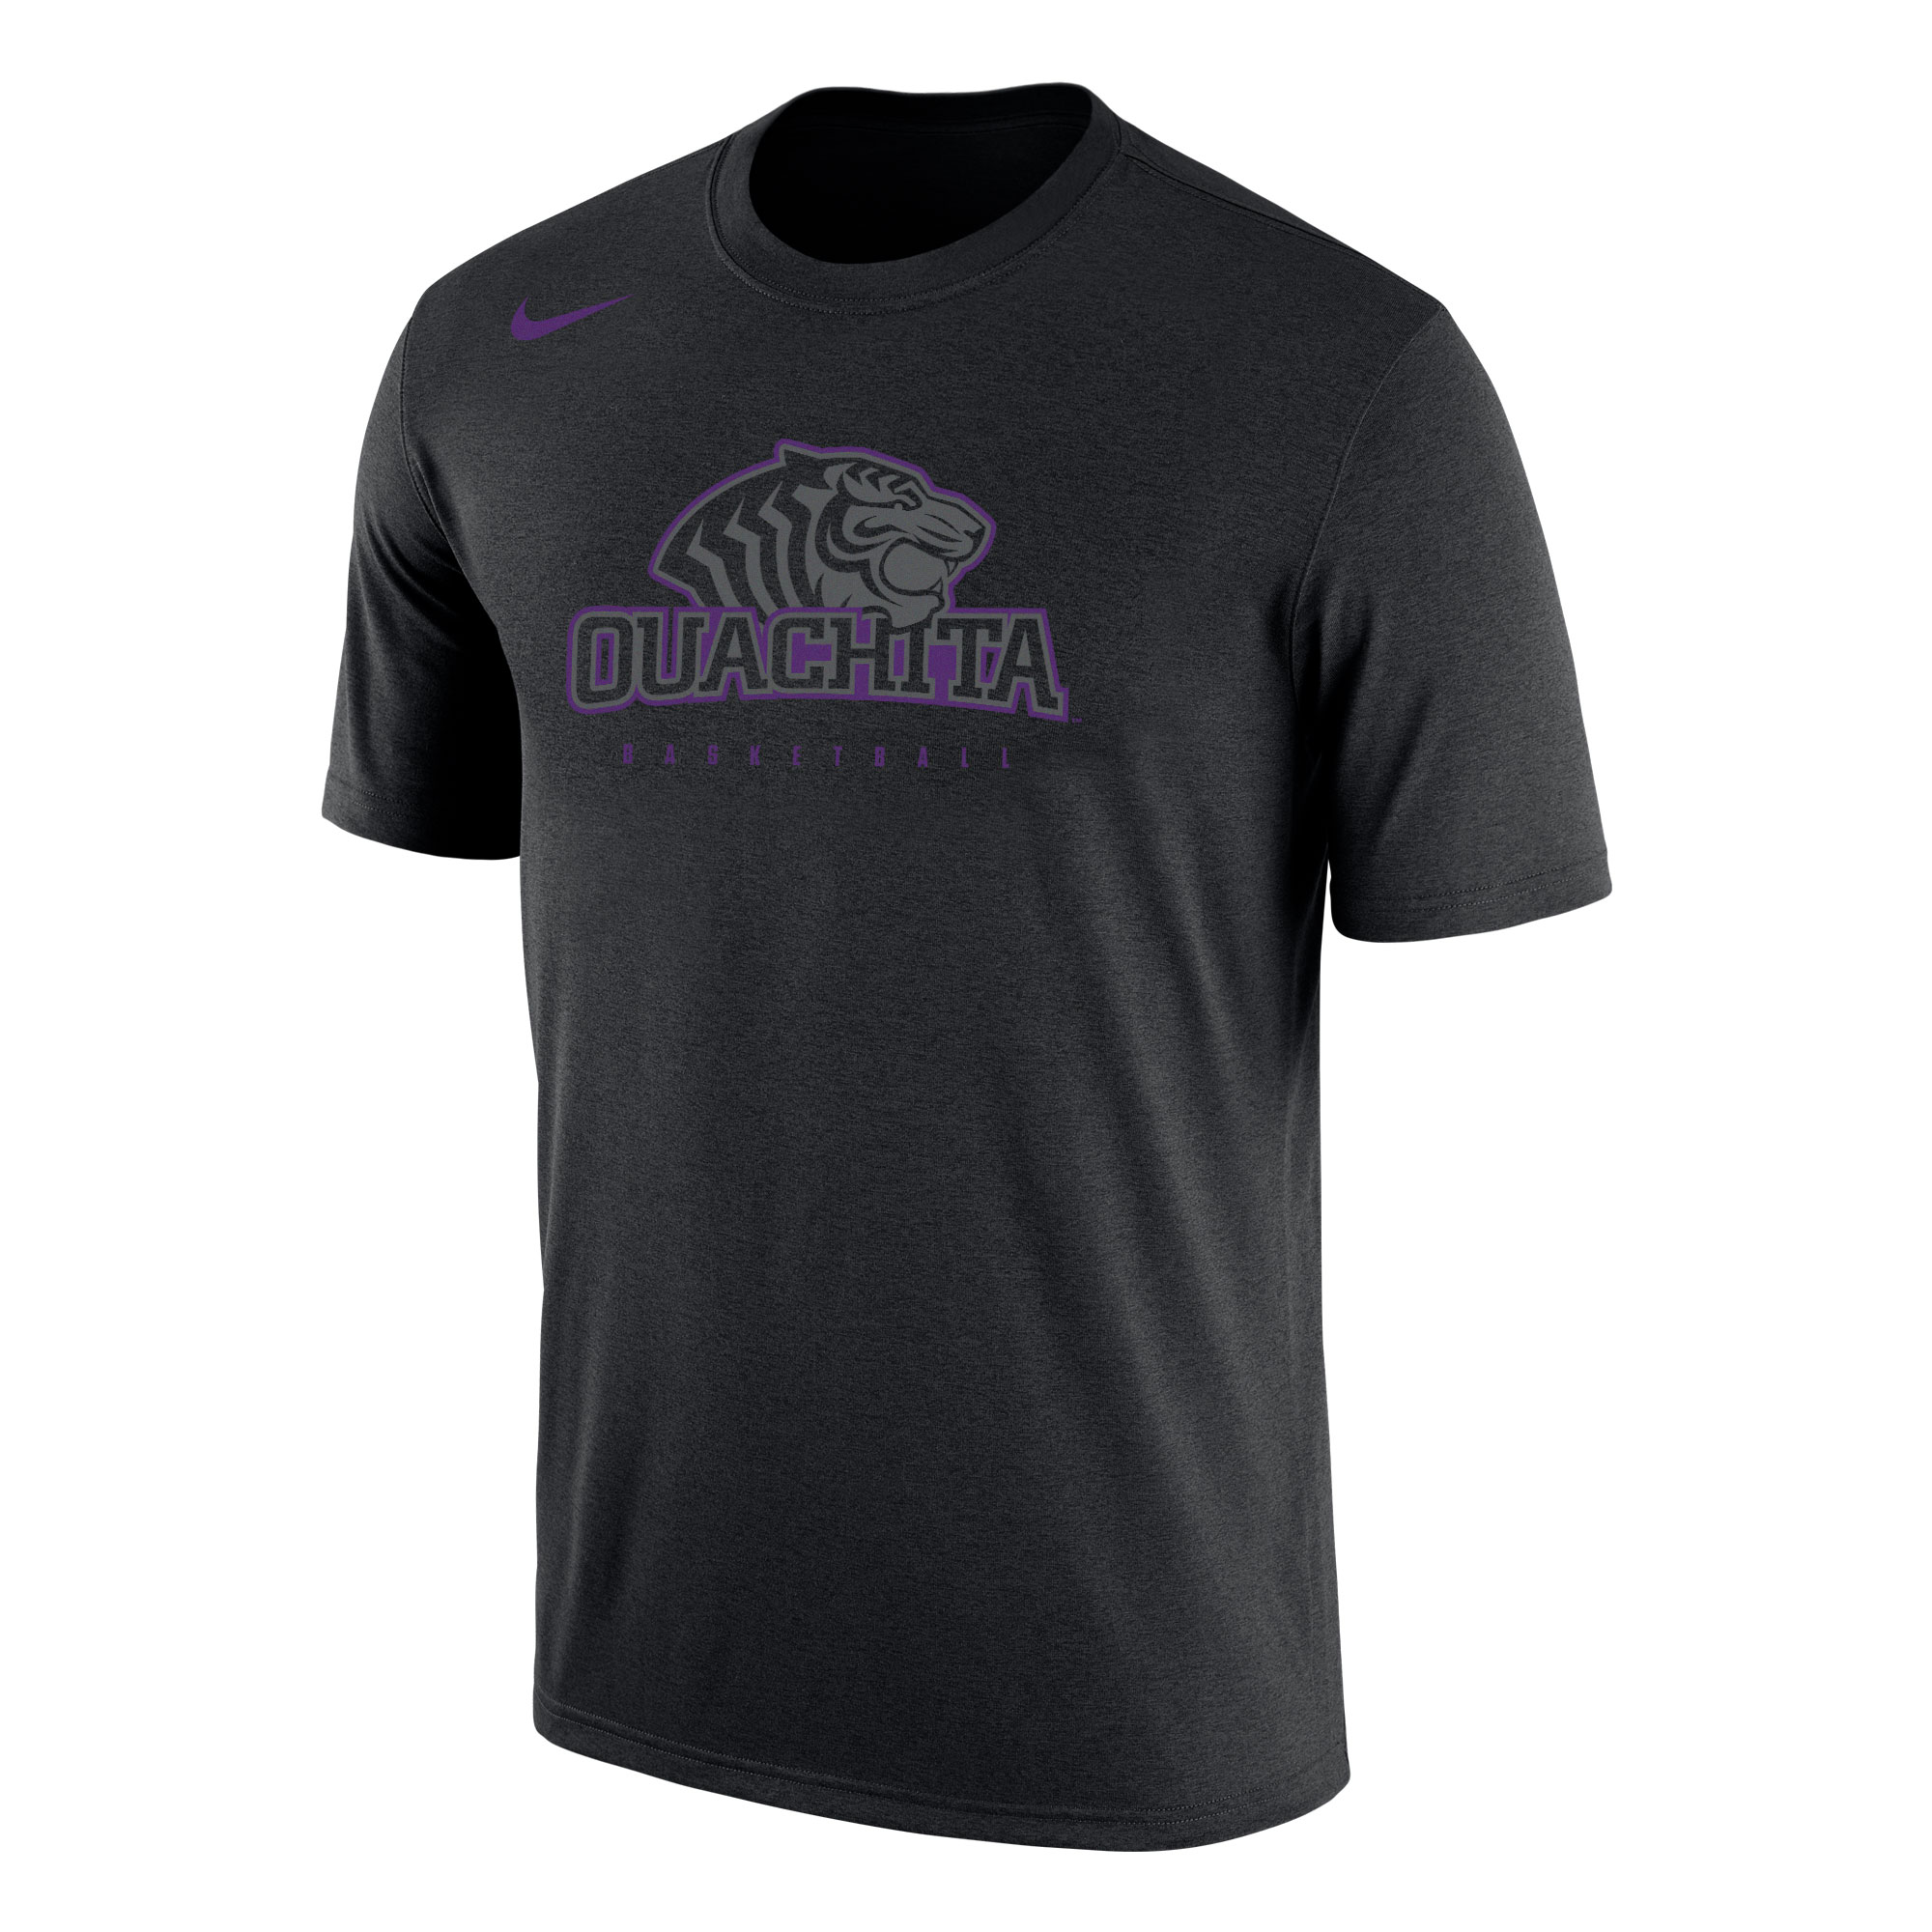 NIKE OUACHITA BASKETBALL DRI-FIT COTTON SHORT SLEEVE TSHIRT